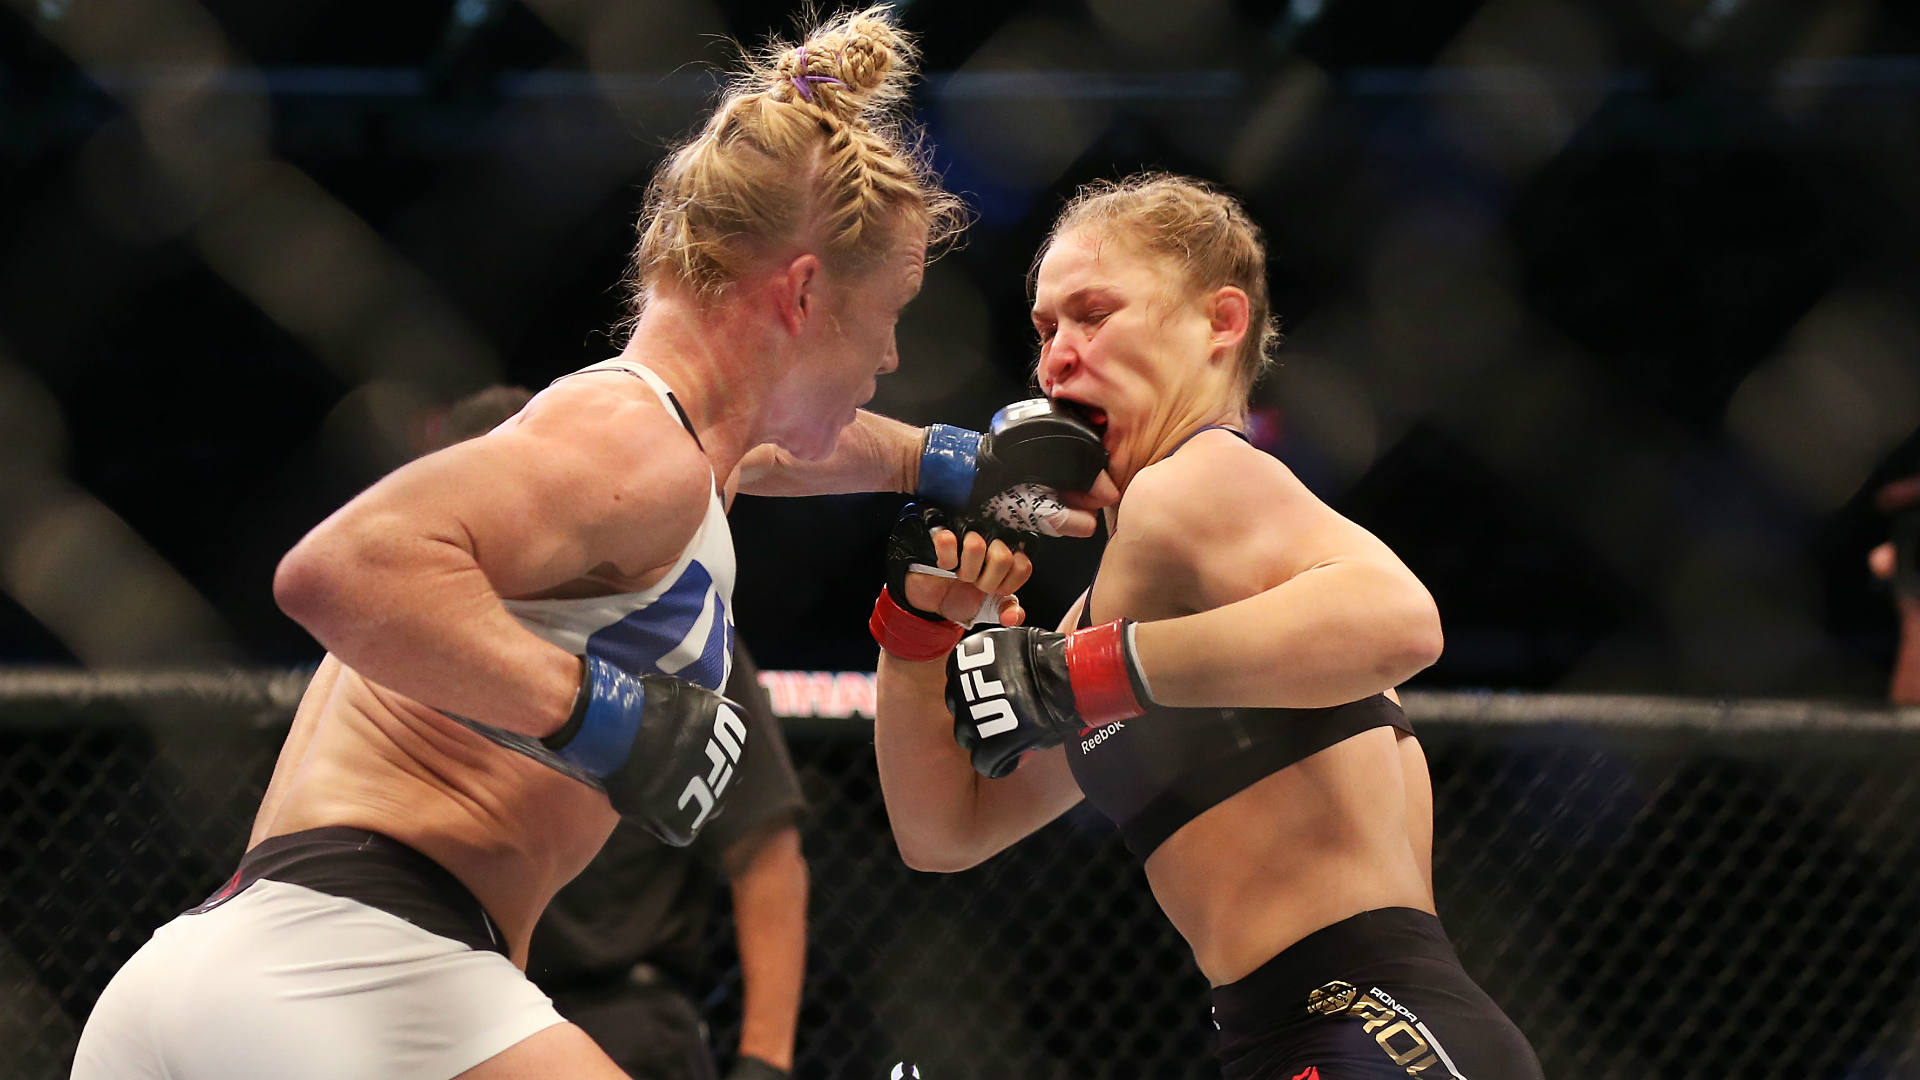 What would the odds be on a Rousey-Holm rematch?